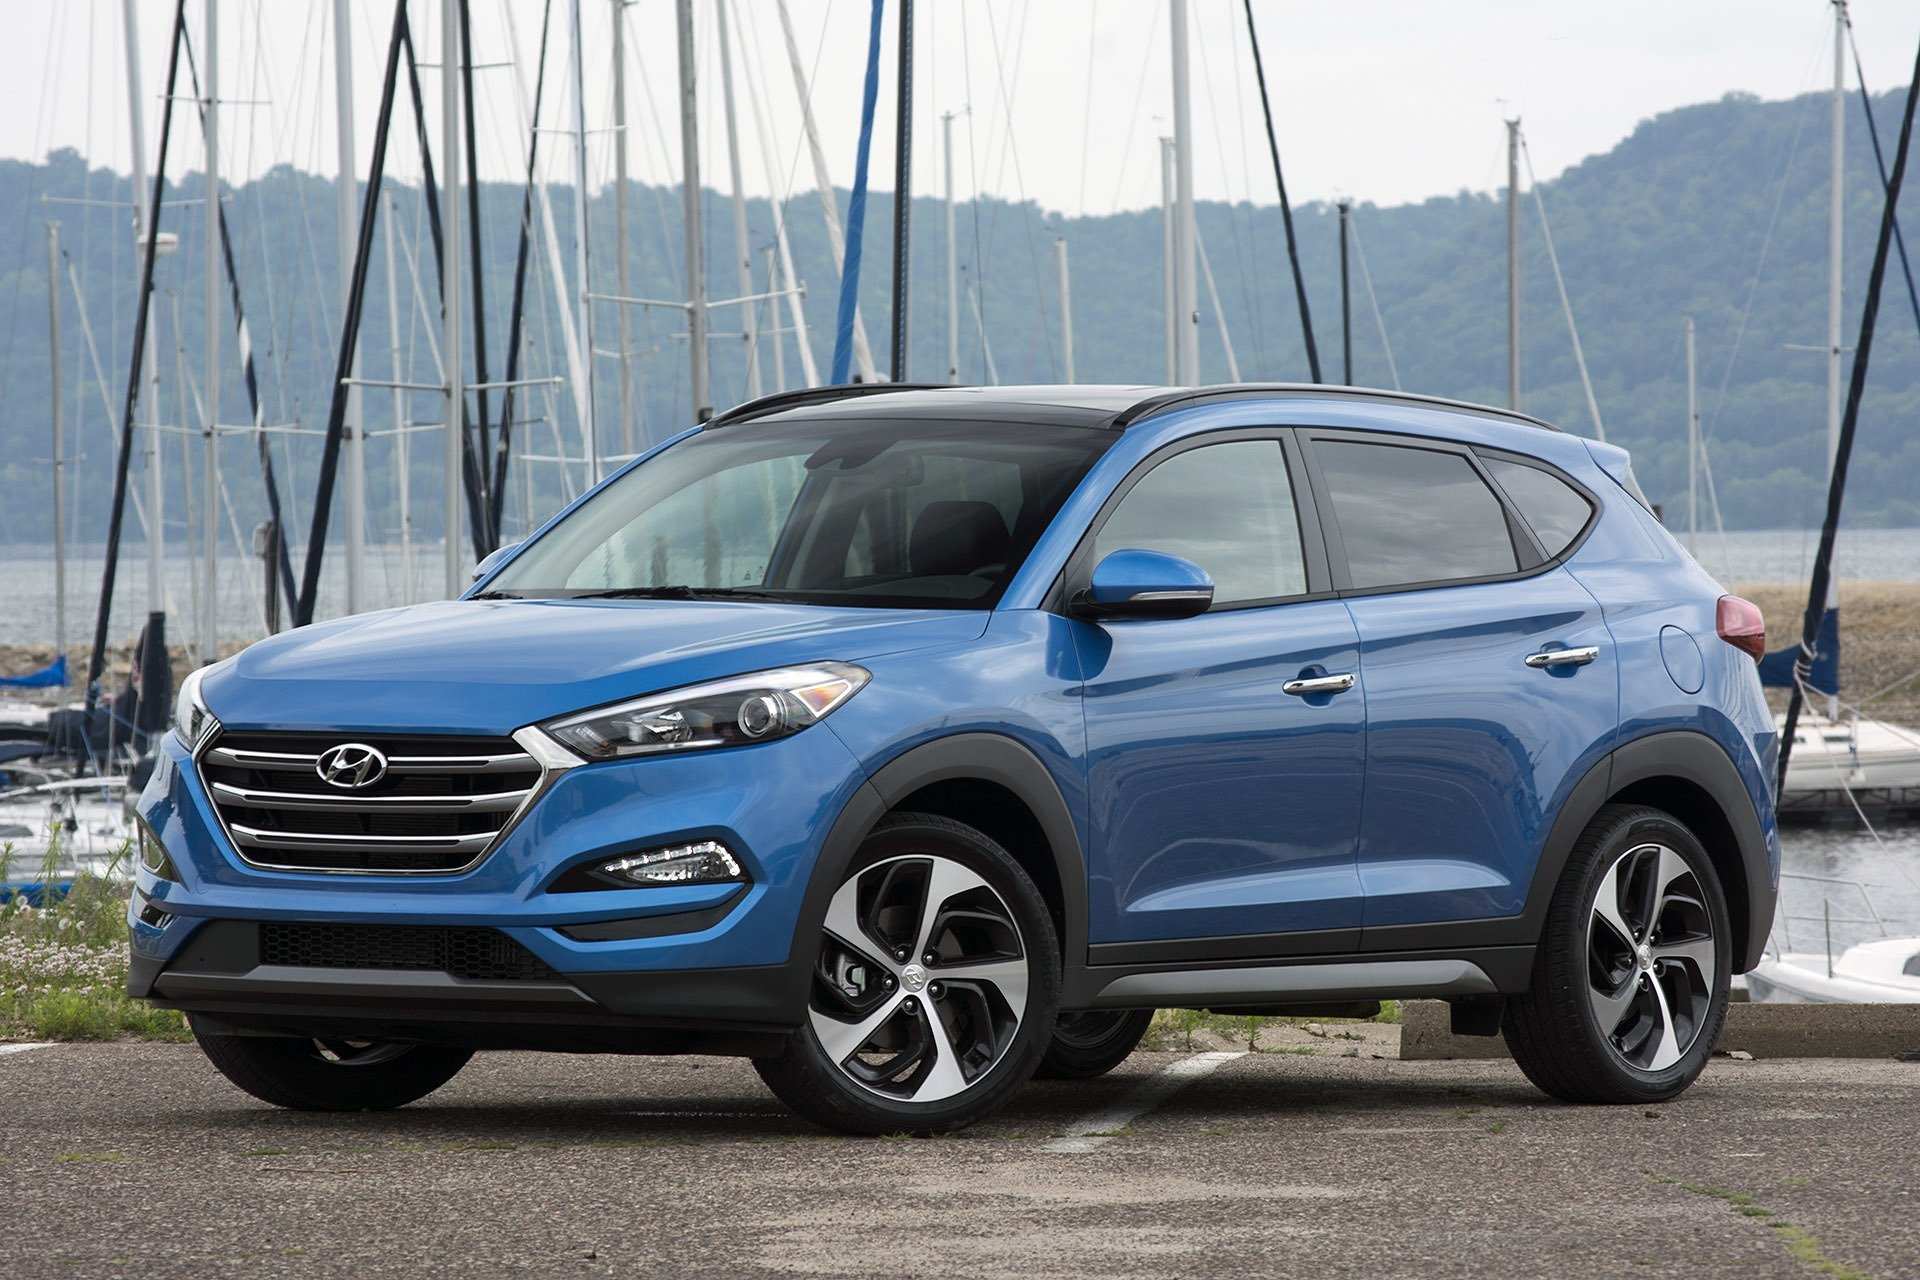 Hyundai Tucson 2017 HD Wallpapers